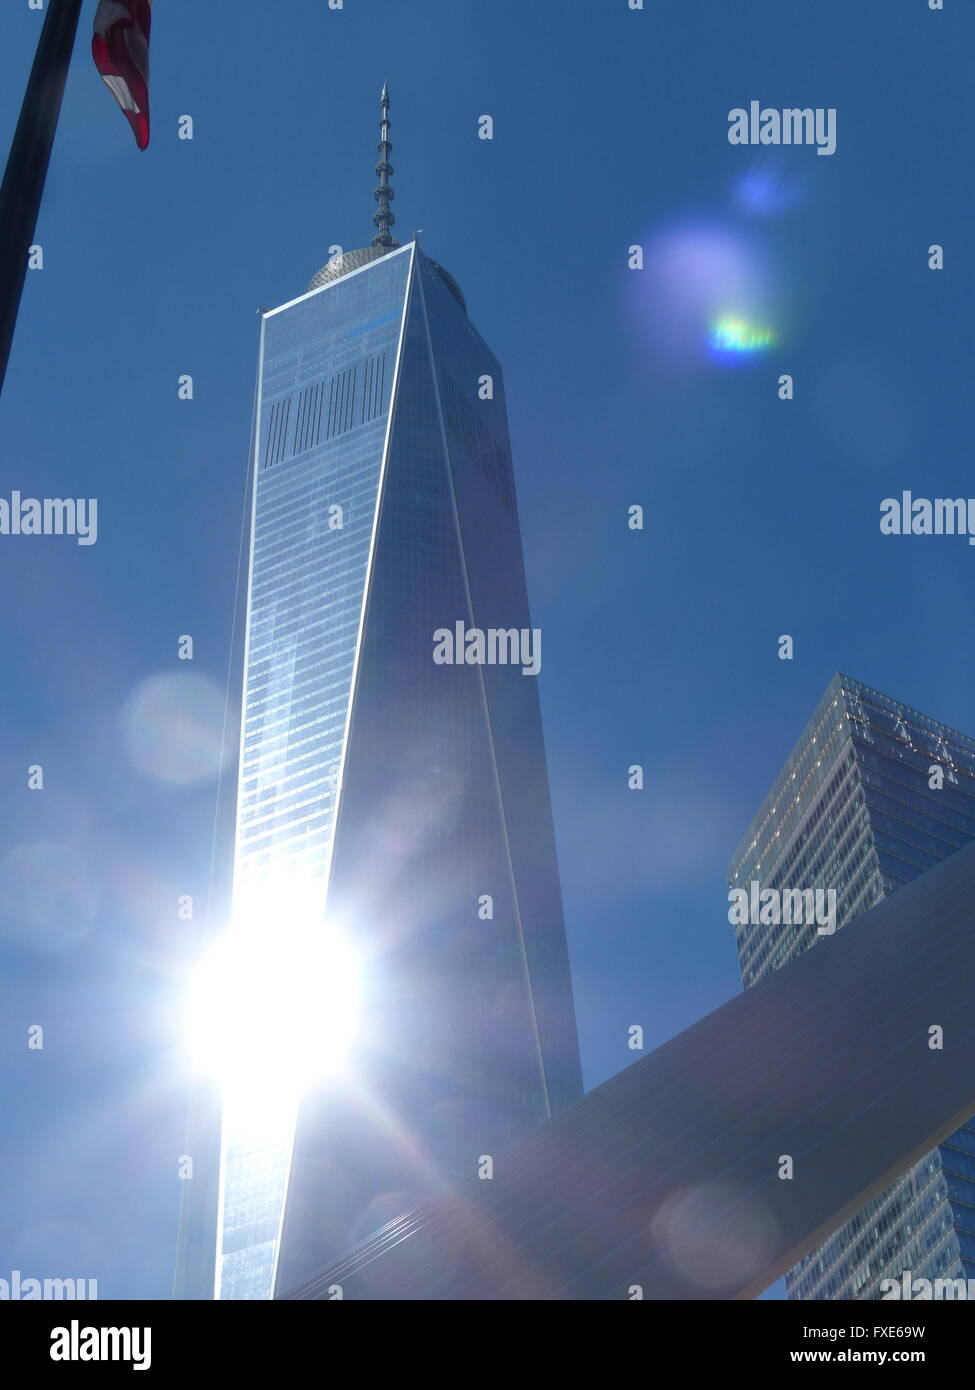 One World Trade Center, formerly Freedom Tower, designed by Architect David Childs - Stock Image